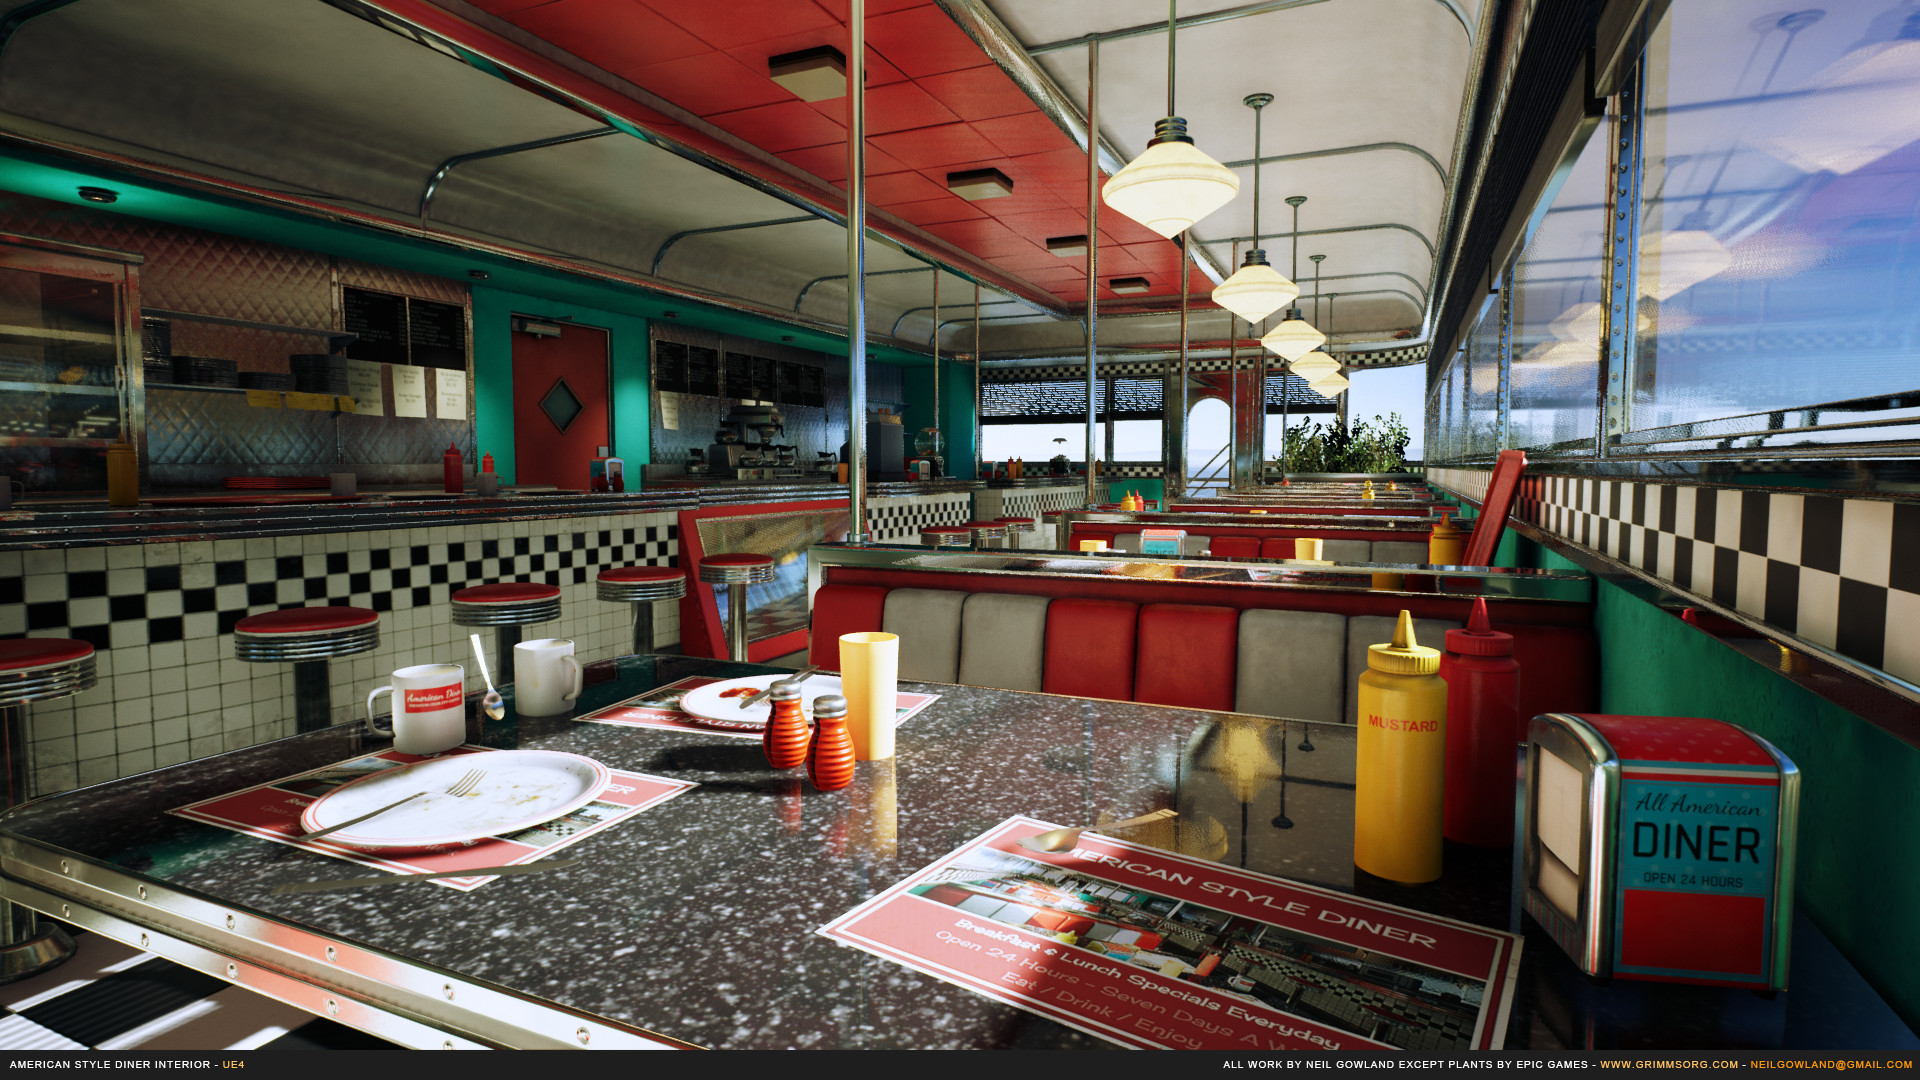 Neil Gowland American Style Diner